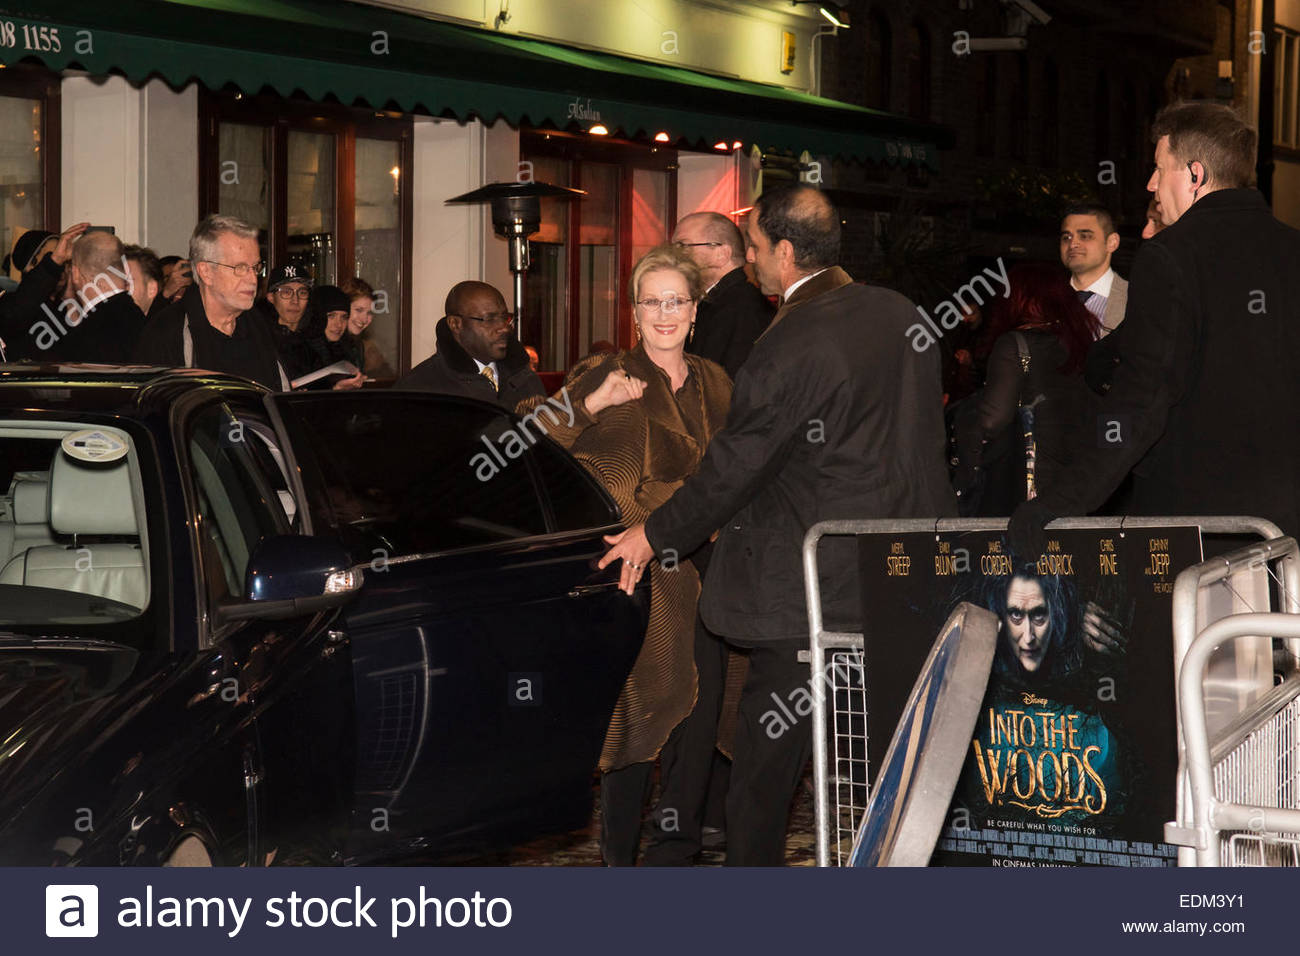 London, UK. 7th January, 2015. Meryl Streep, star of Into The Woods, arriving at the film's premier, Curzon Cinema, Stock Photo